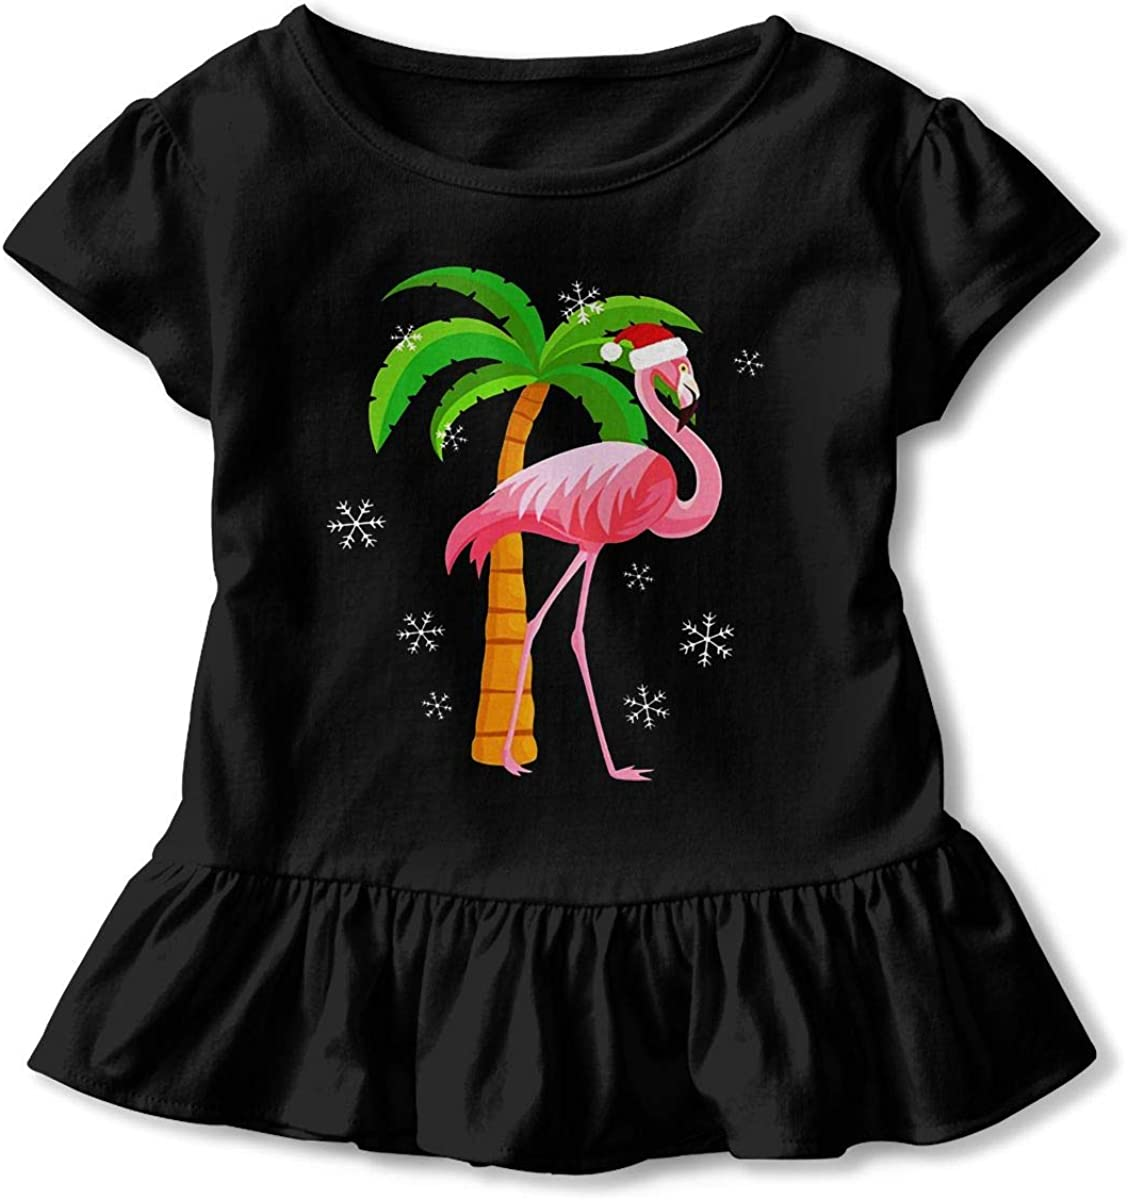 Red Flamingo with Christmas Hat Baby Skirts Adorable Kids T Shirt Dress Cotton Flounces Outfits